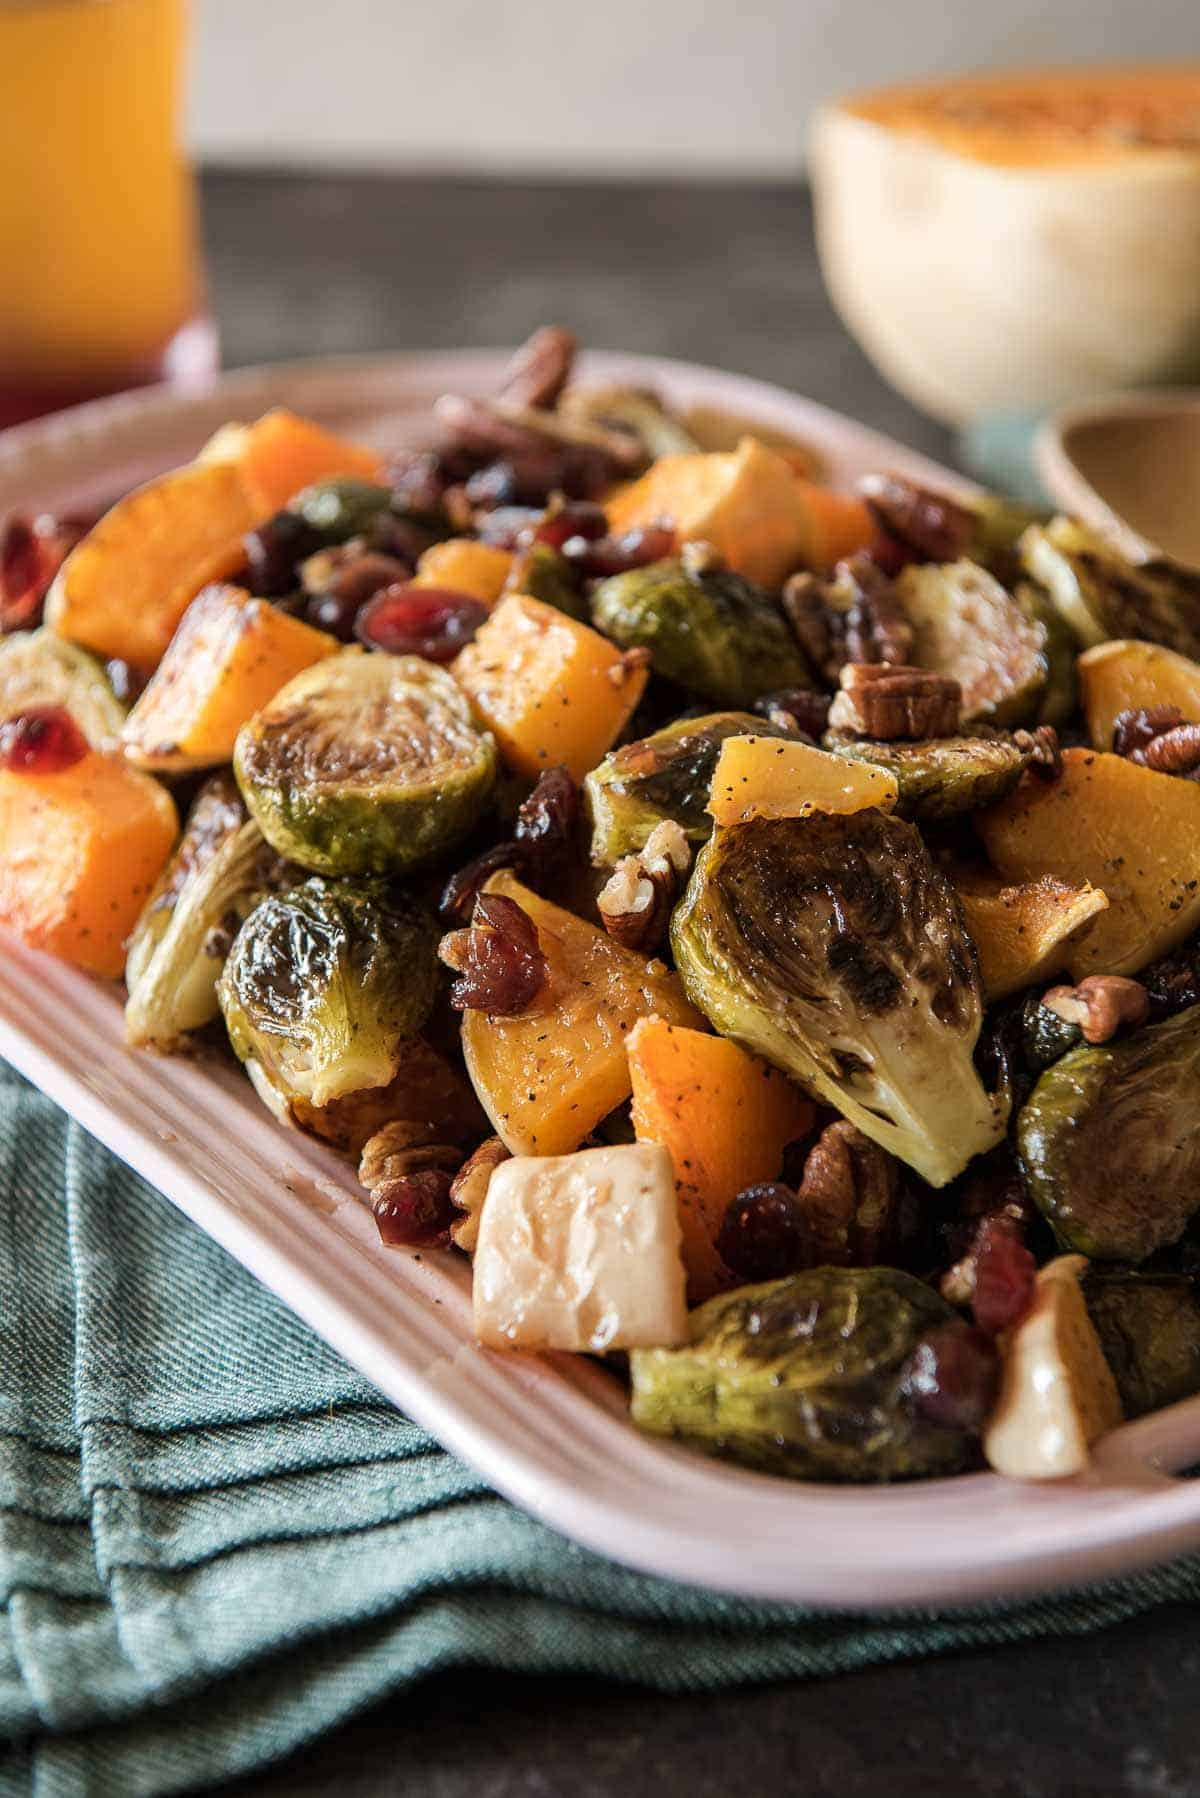 Roasted Brussels Sprouts & Squash With Cranberry Cider Glaze #SundaySupper